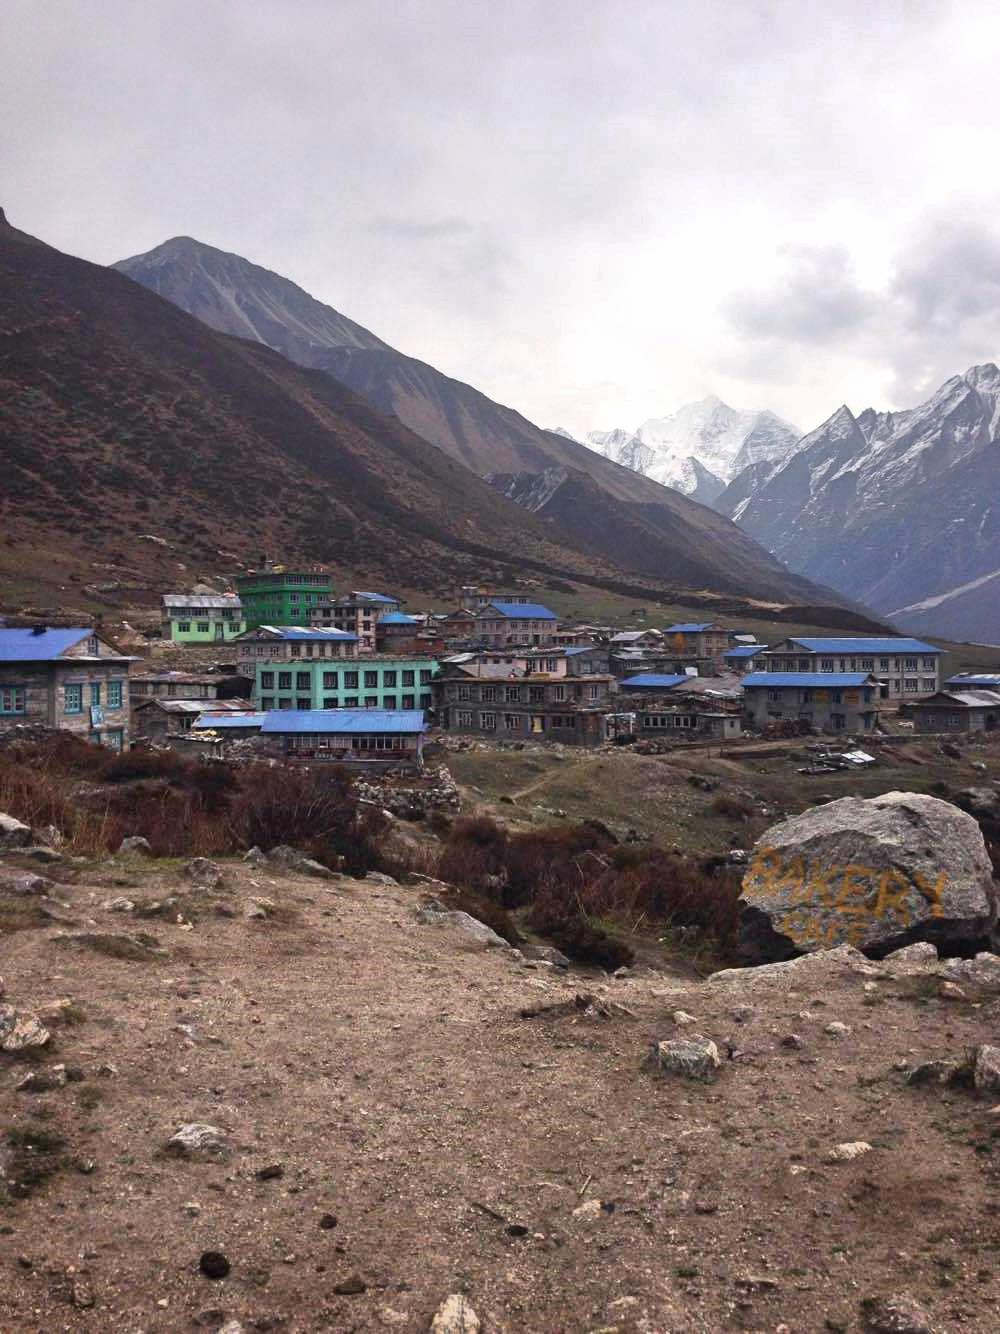 Villages encountered during the Langtang Valley Trek